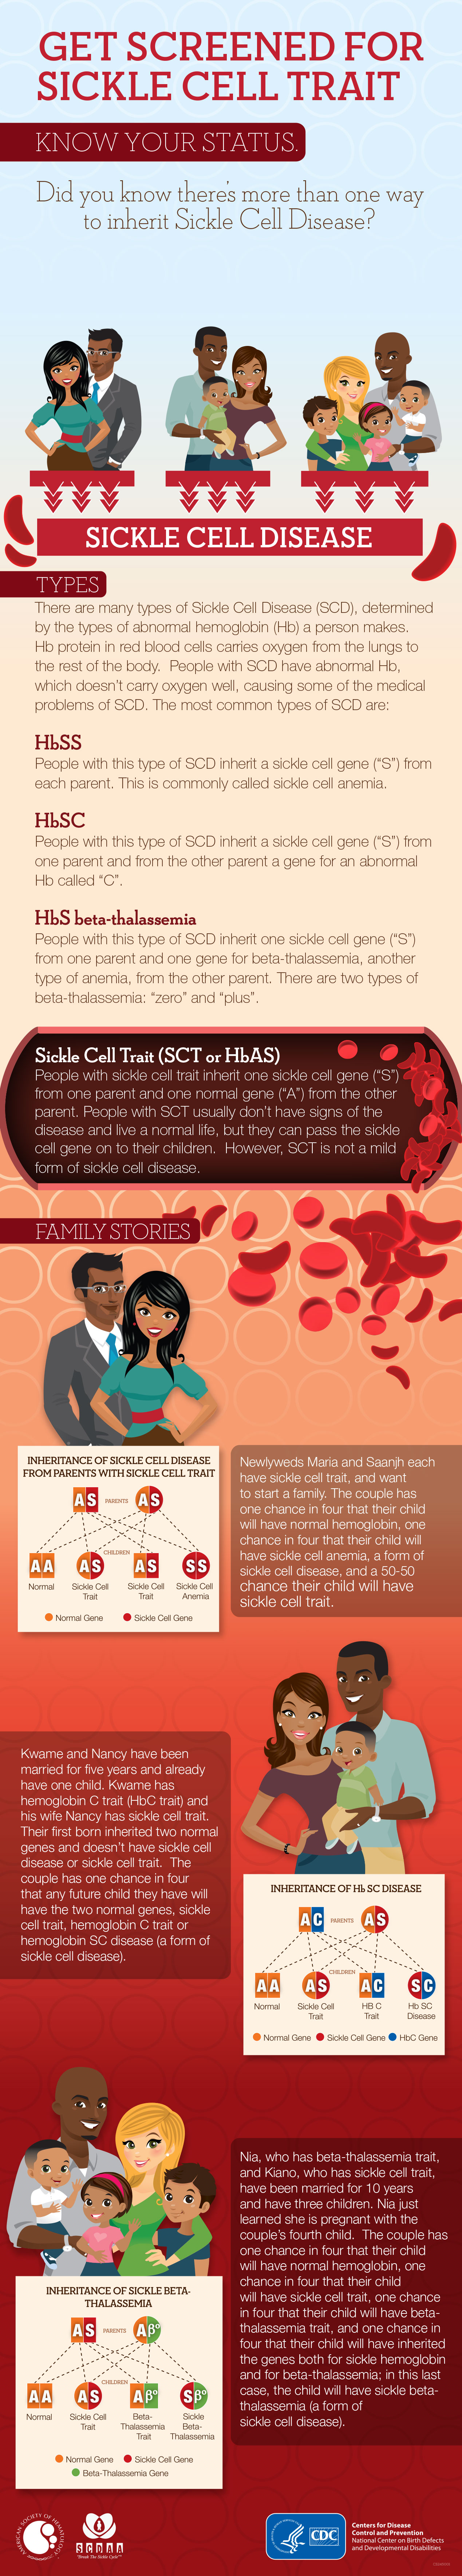 Infographic: Get screened for sickle cell trait